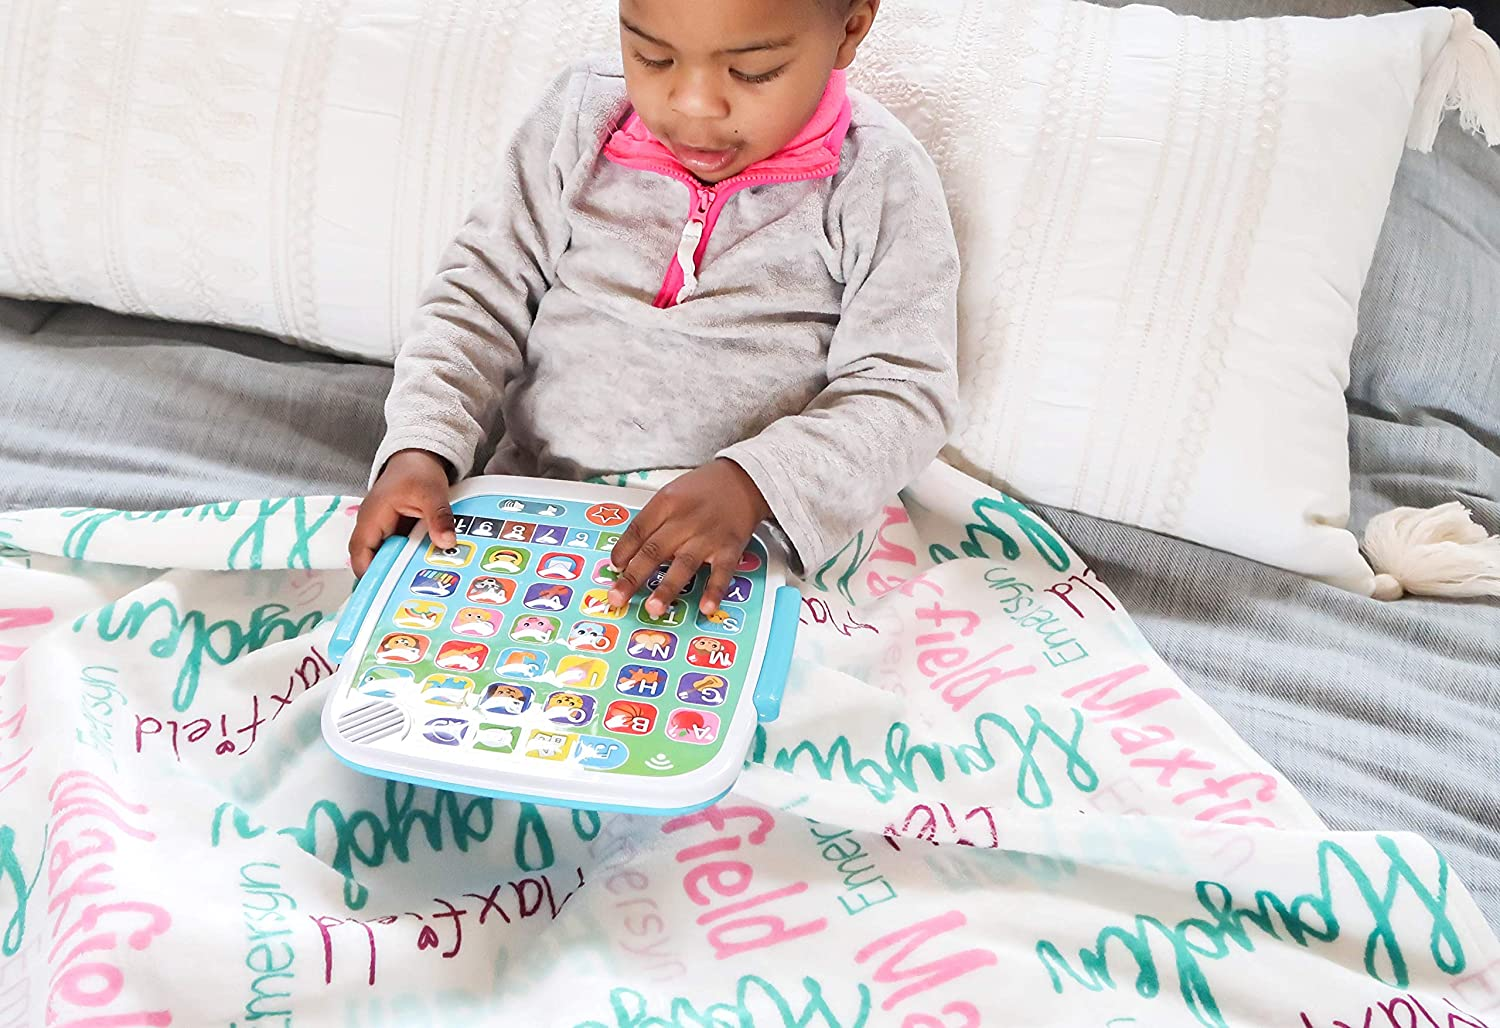 Personalize2 Full Name Blankets Boy Full Name